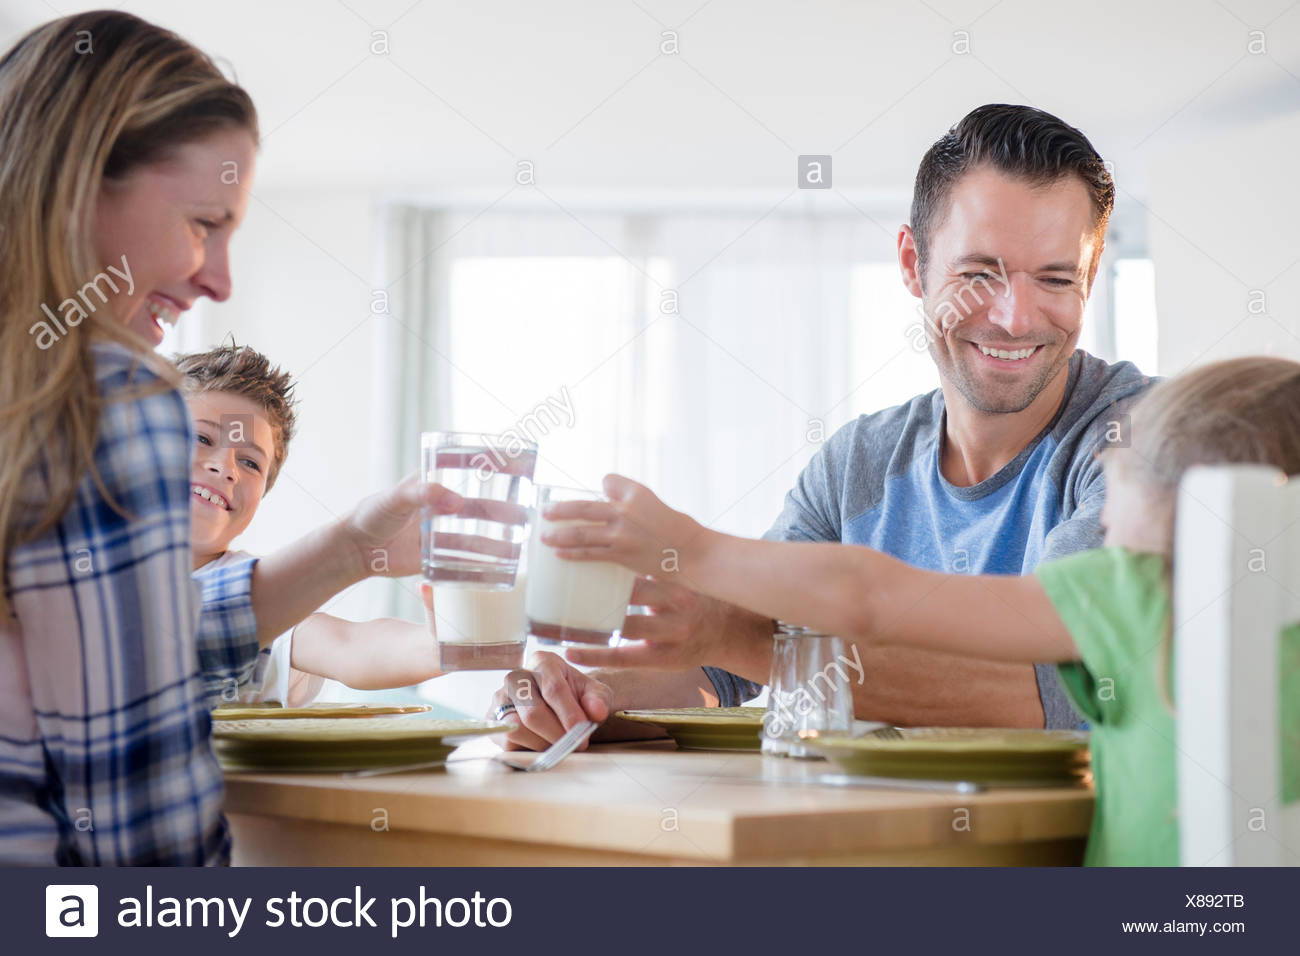 Family with two children (6-7, 8-9) making a toast - Stock Image